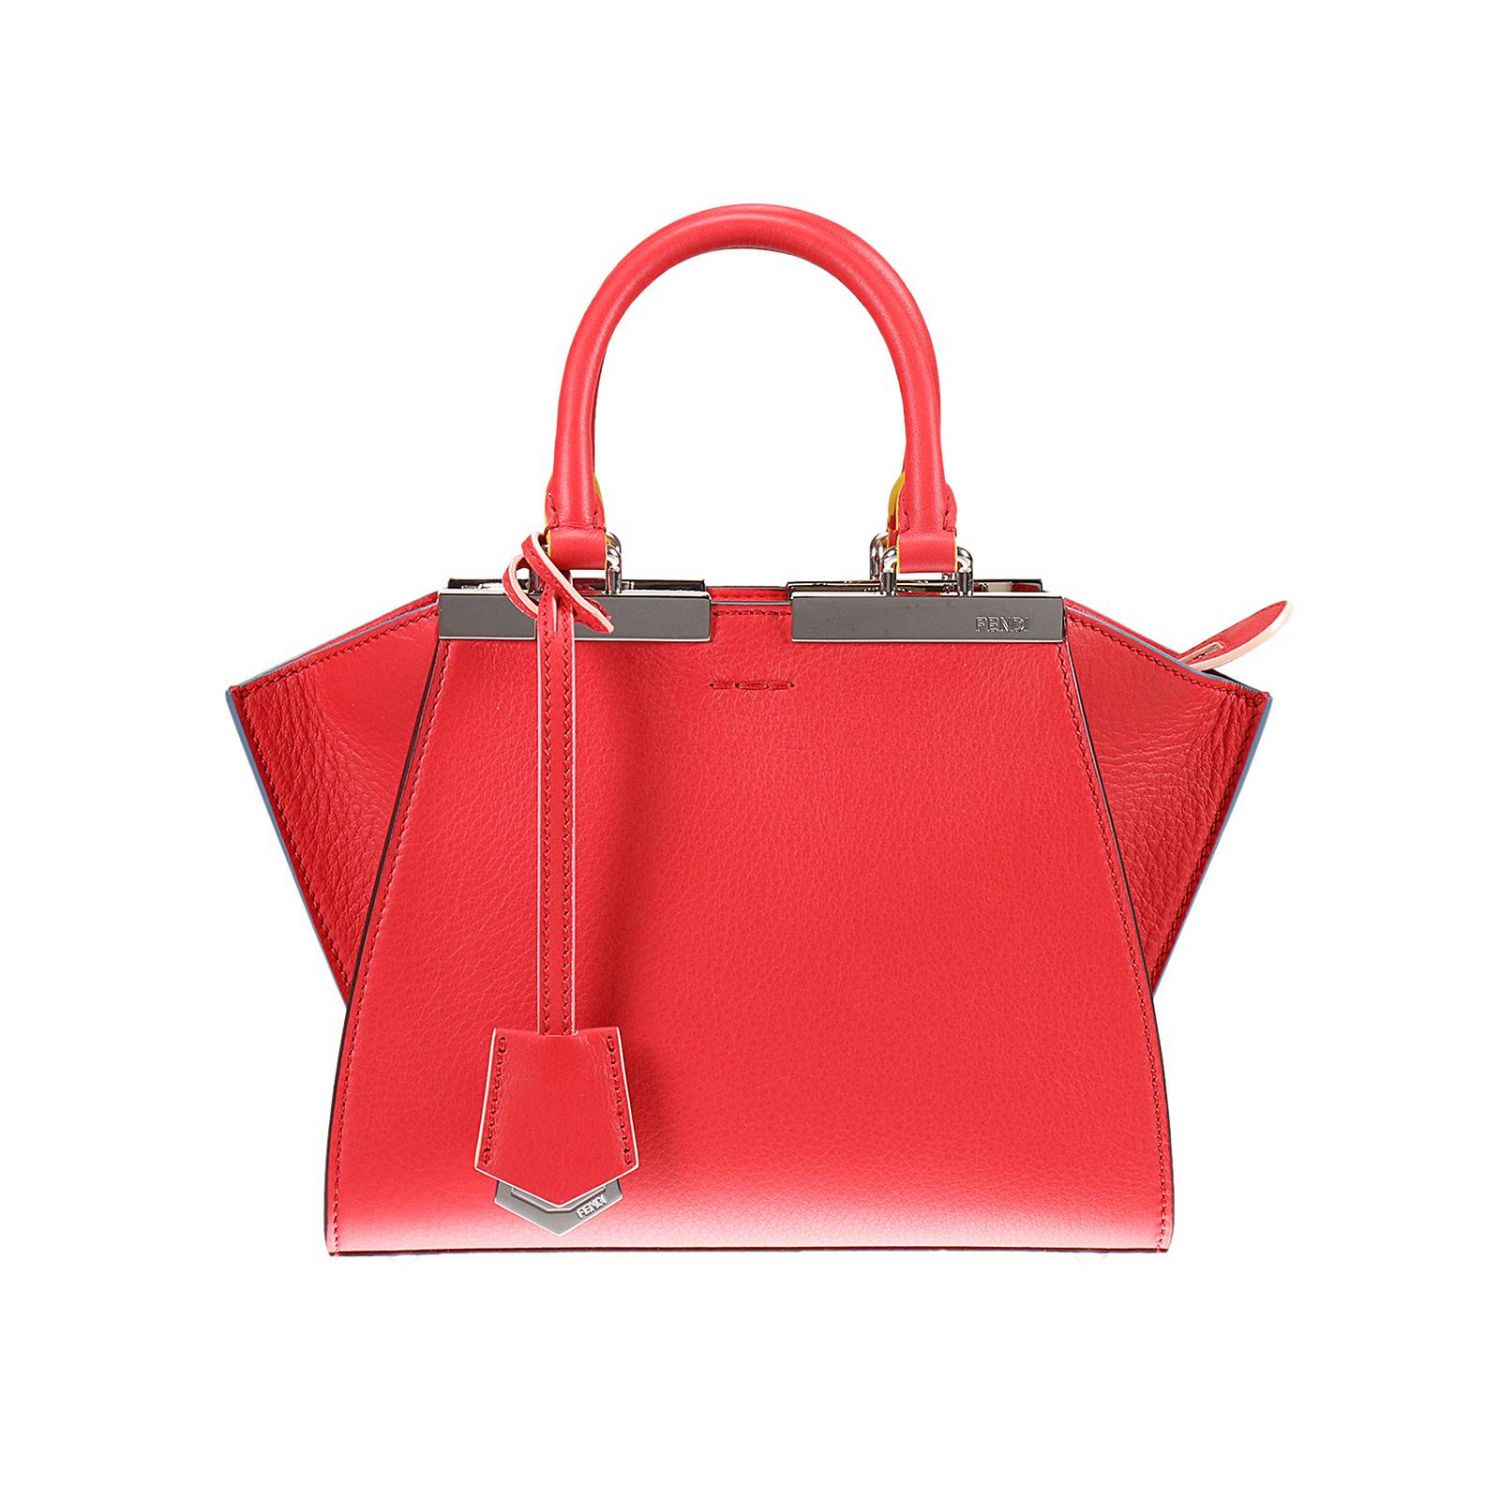 Handbag Handbag Women Fendi 8162875